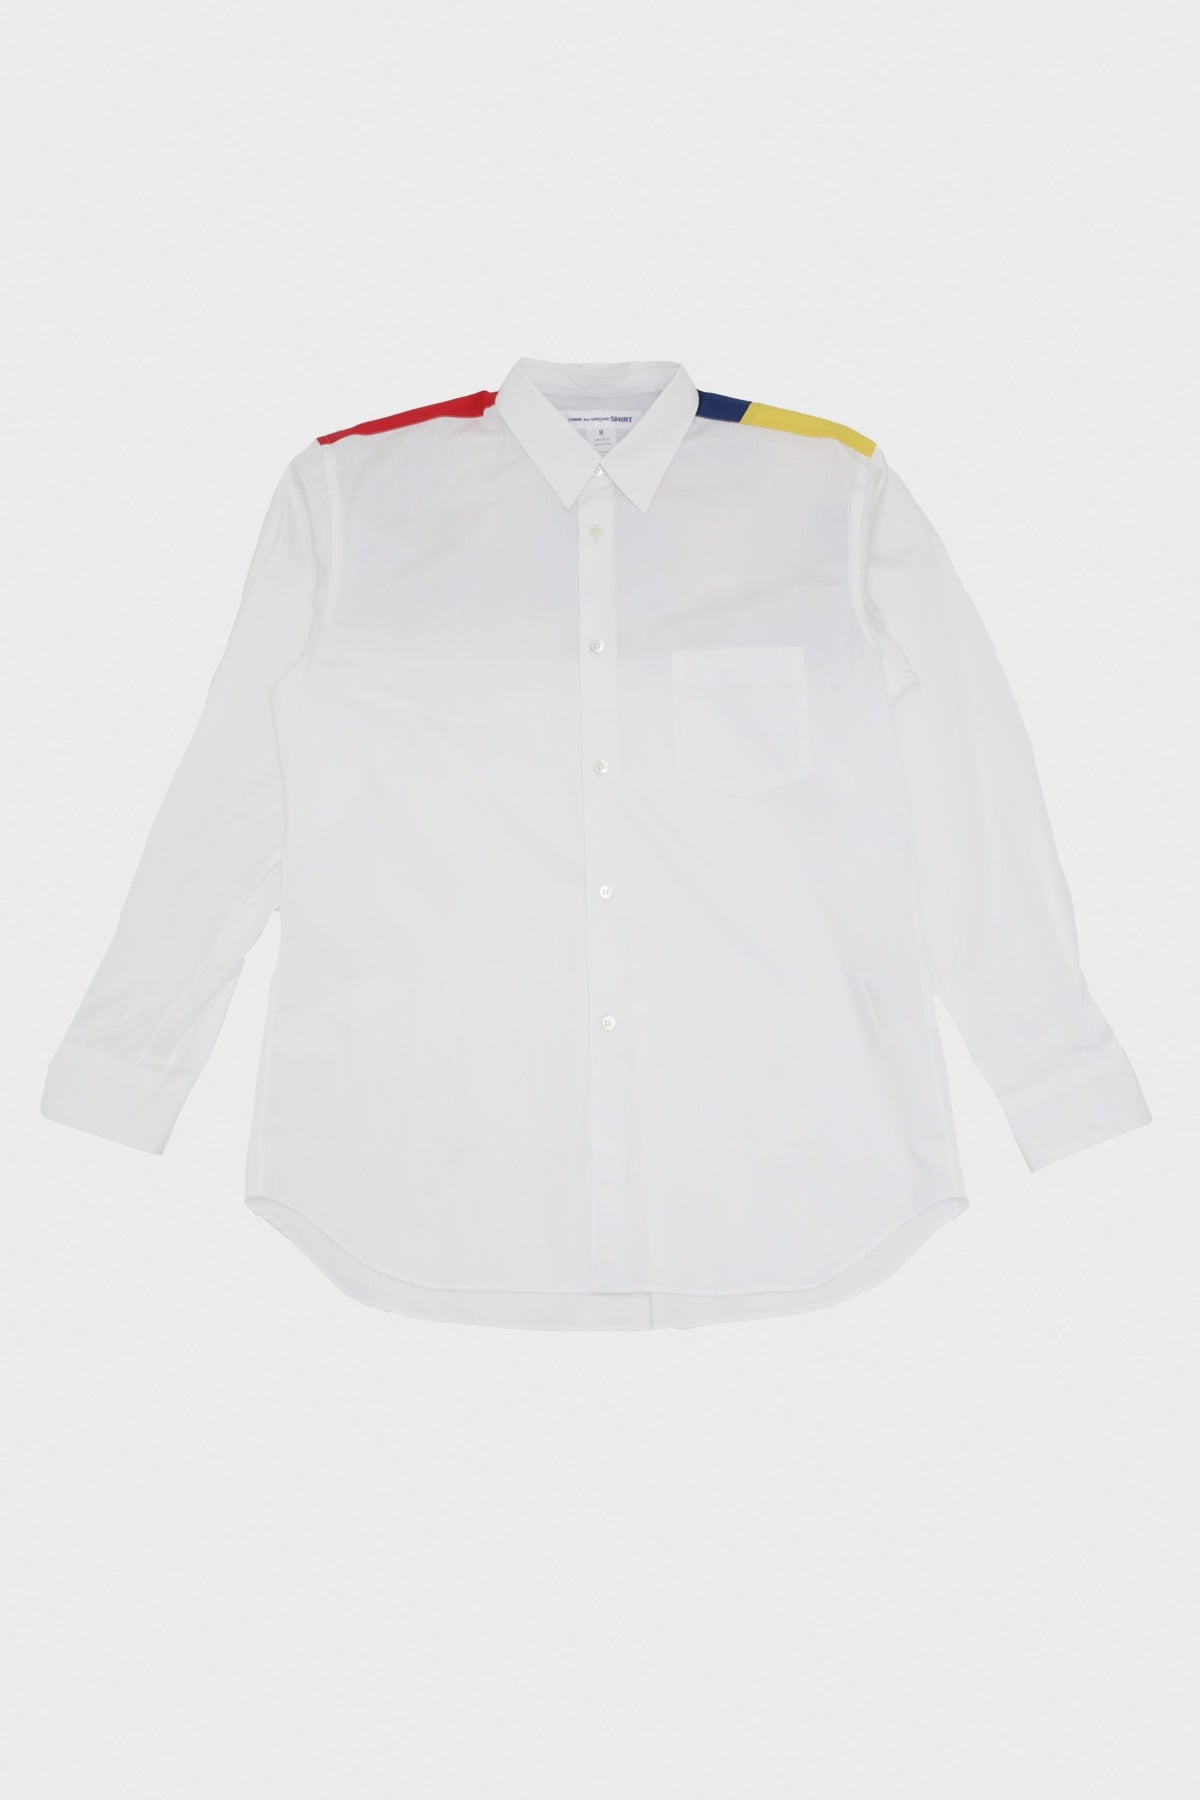 Comme des Garçons SHIRT - Solid Mix Shirt - Red/Blue/Yellow - Canoe Club